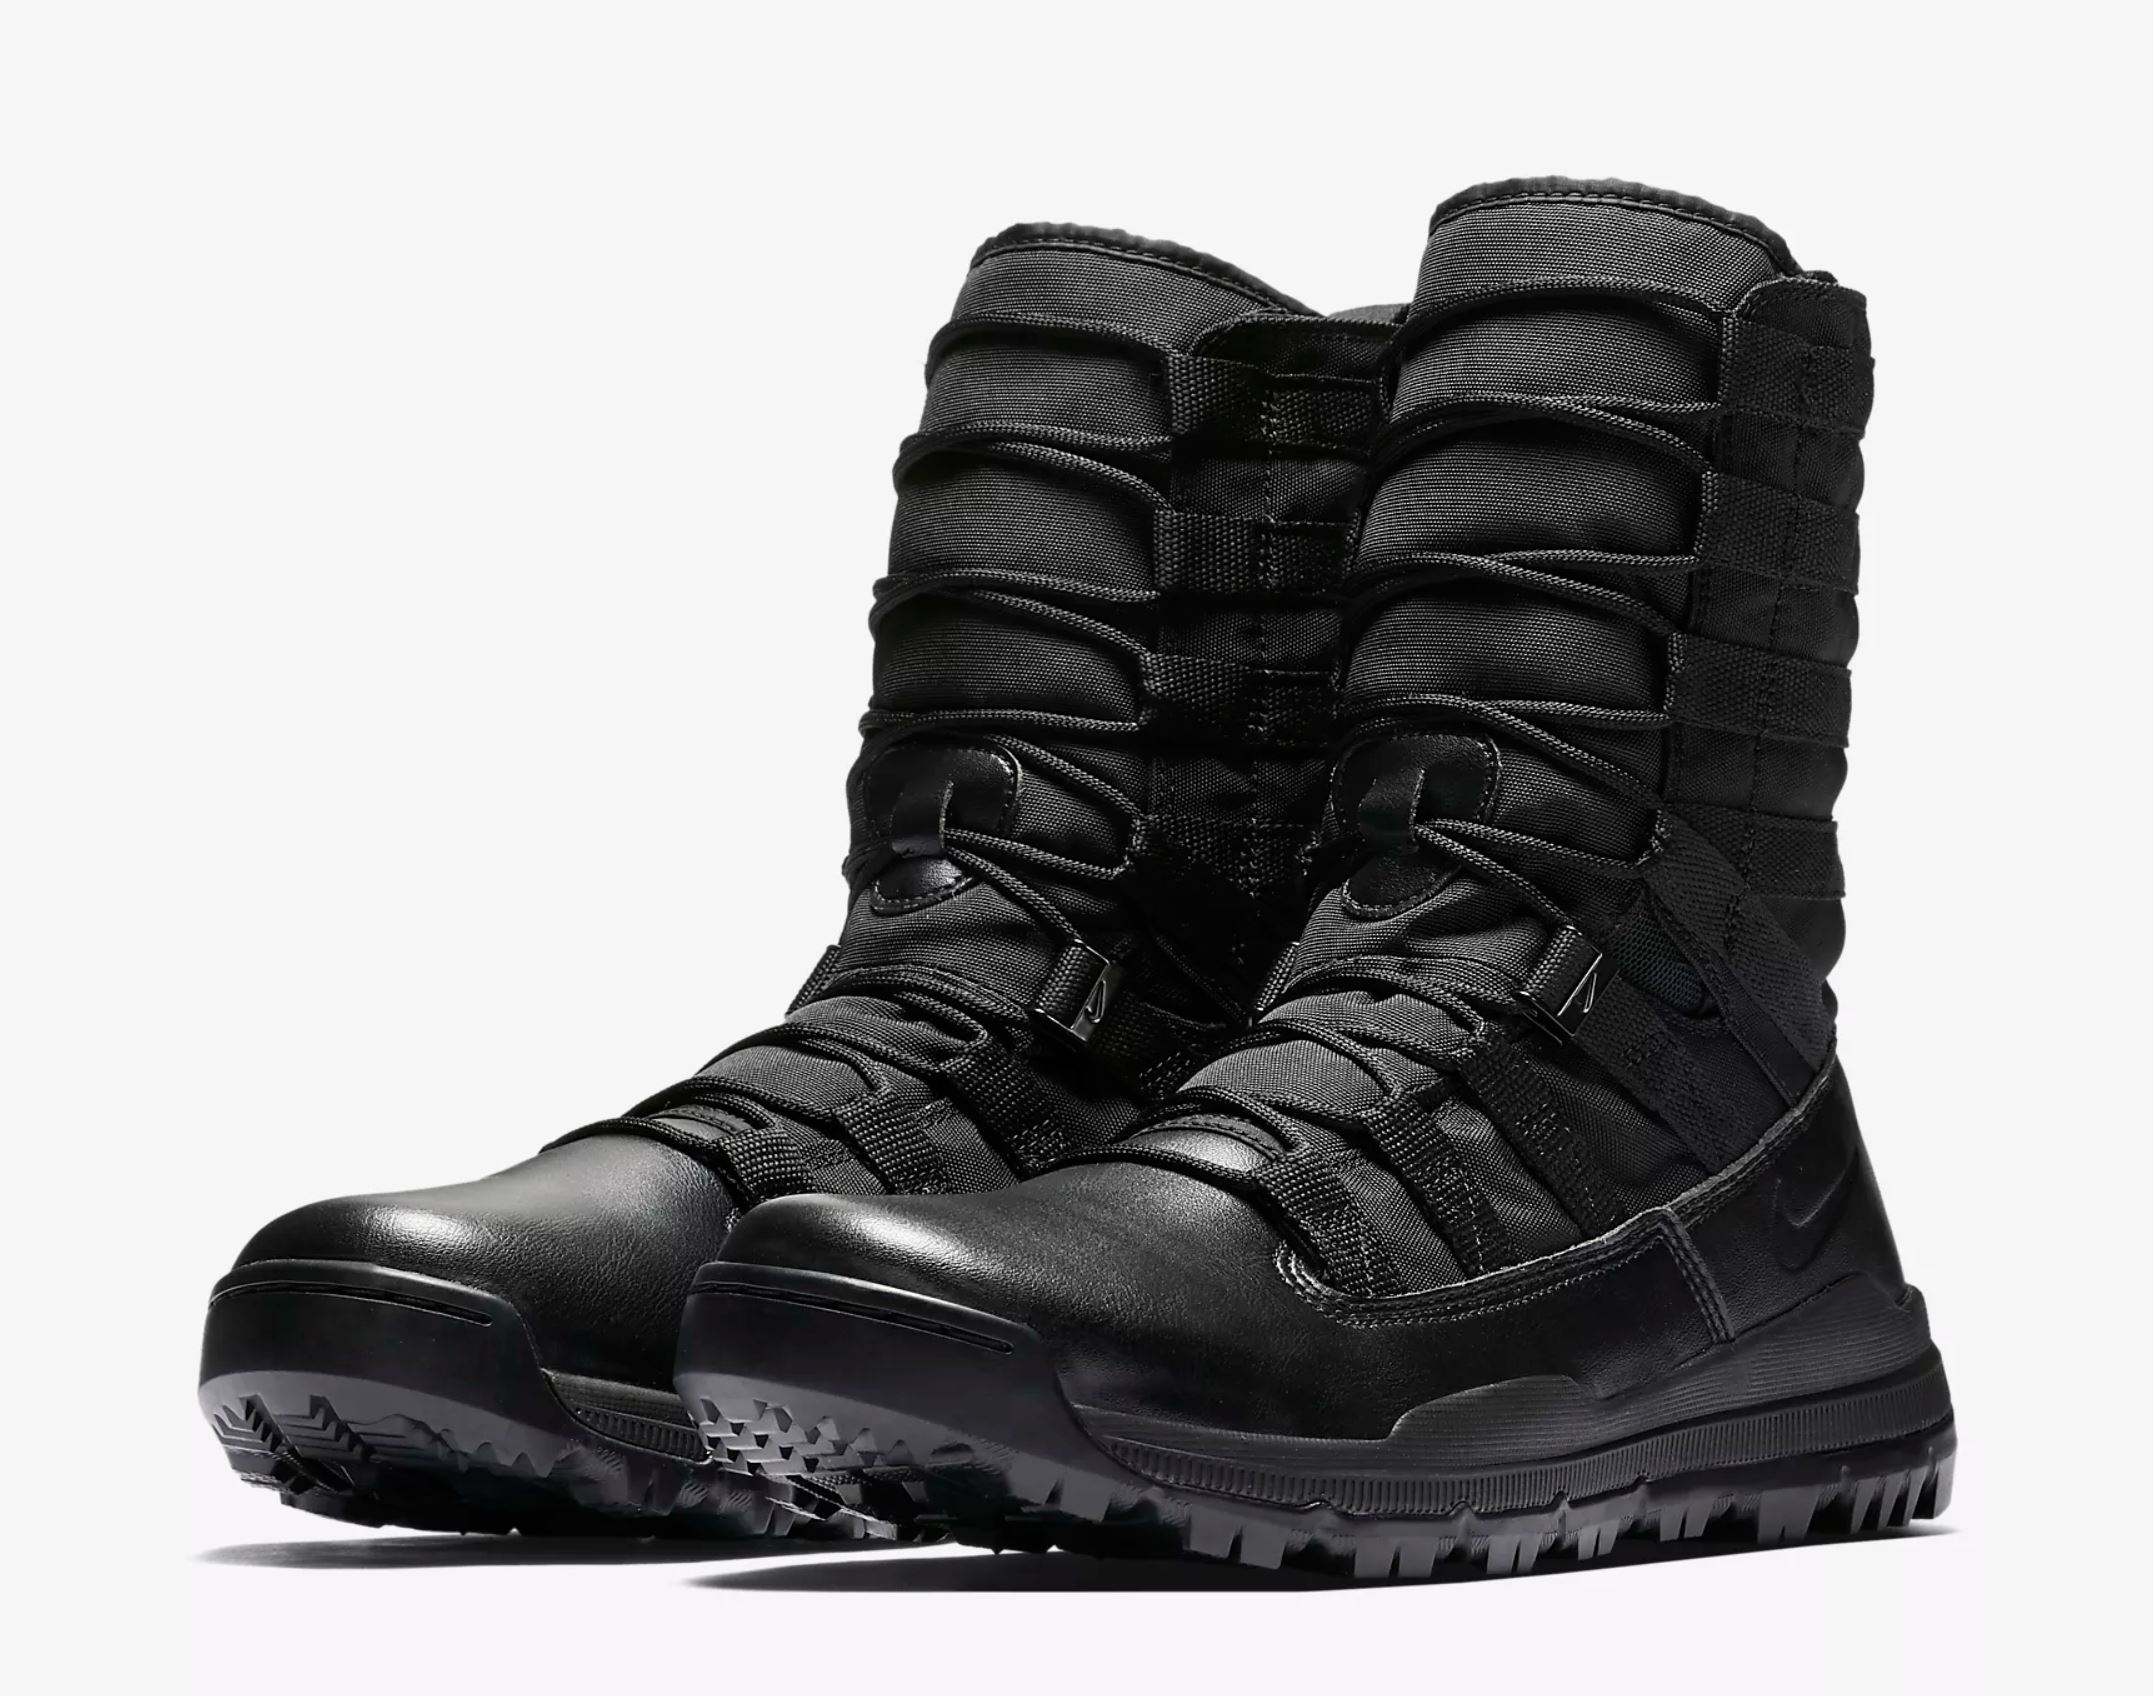 f57034f7e36 The Nike SFB Gen 2 8